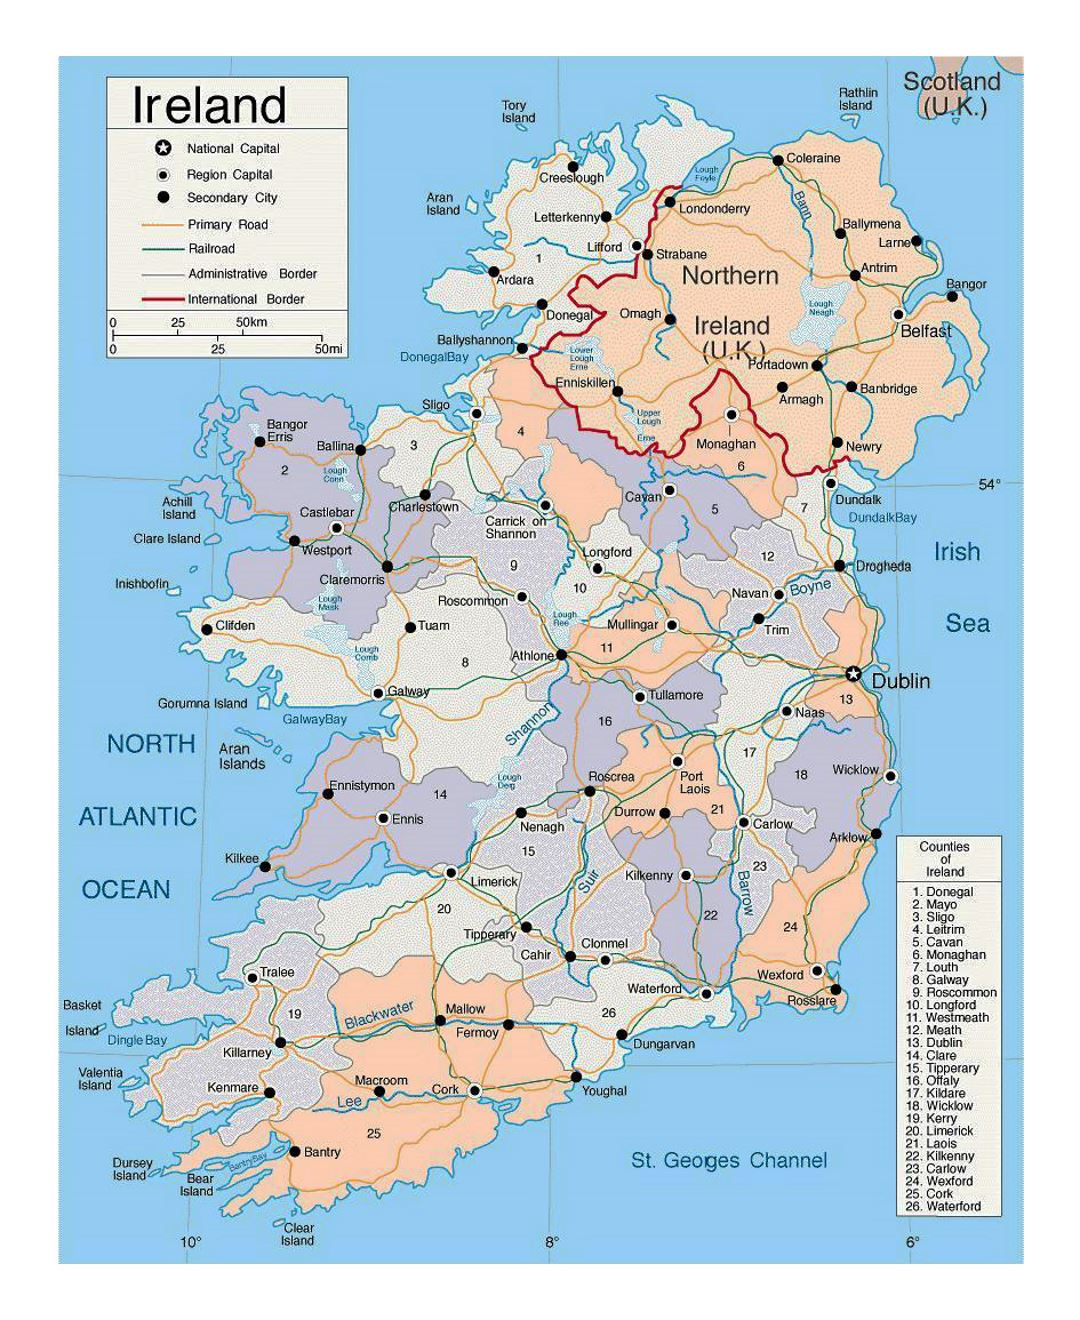 detailed political and administrative map of ireland with roads